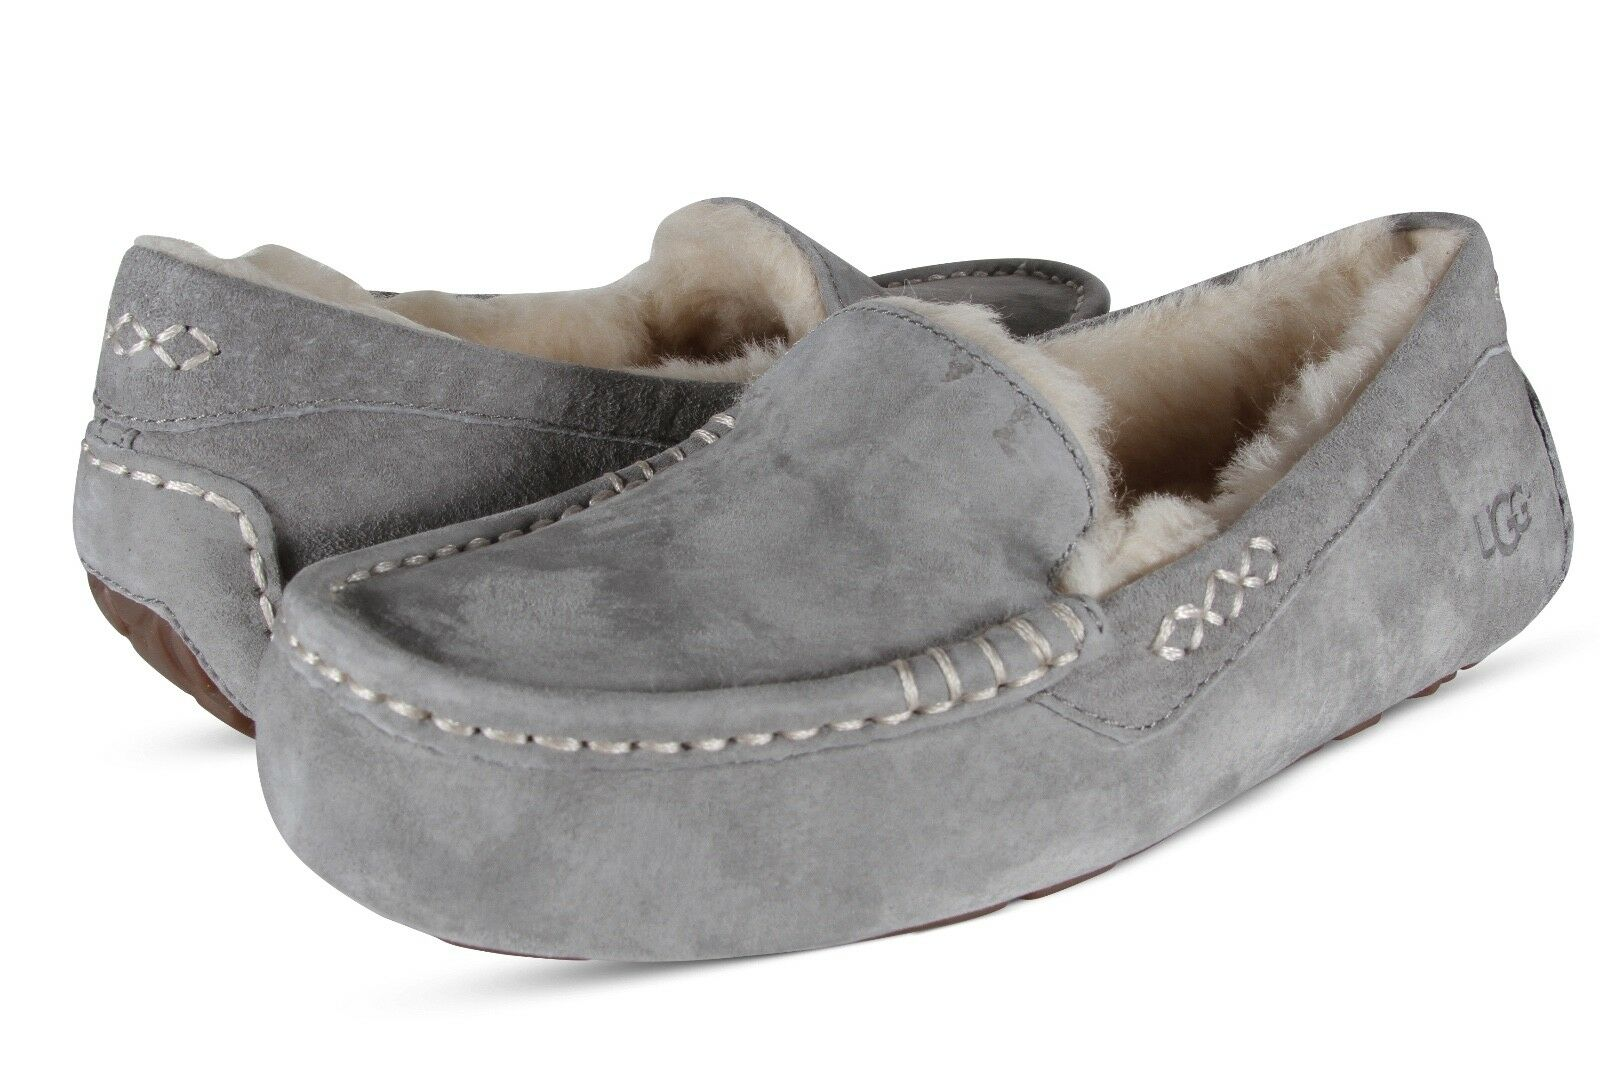 7e7934f85f1 UGG Women's Ansley Moccasin Light Grey,10 B(M) US